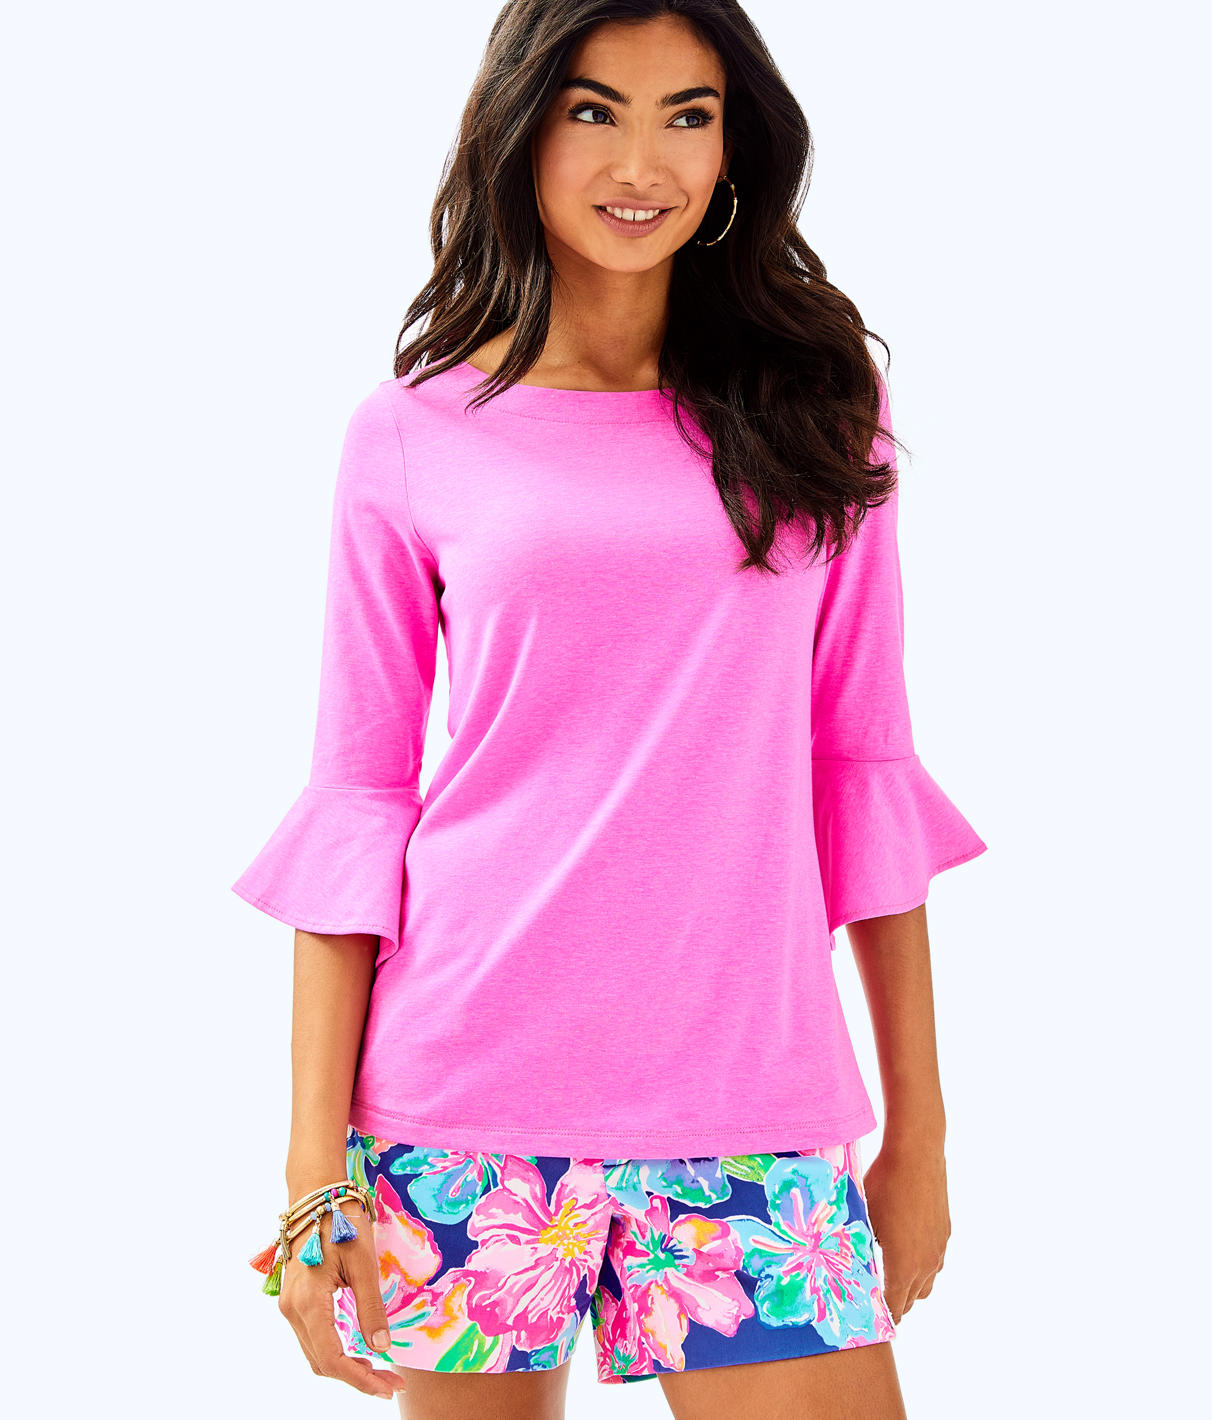 Lilly Pulitzer Lilly Pulitzer Womens Fontaine Top